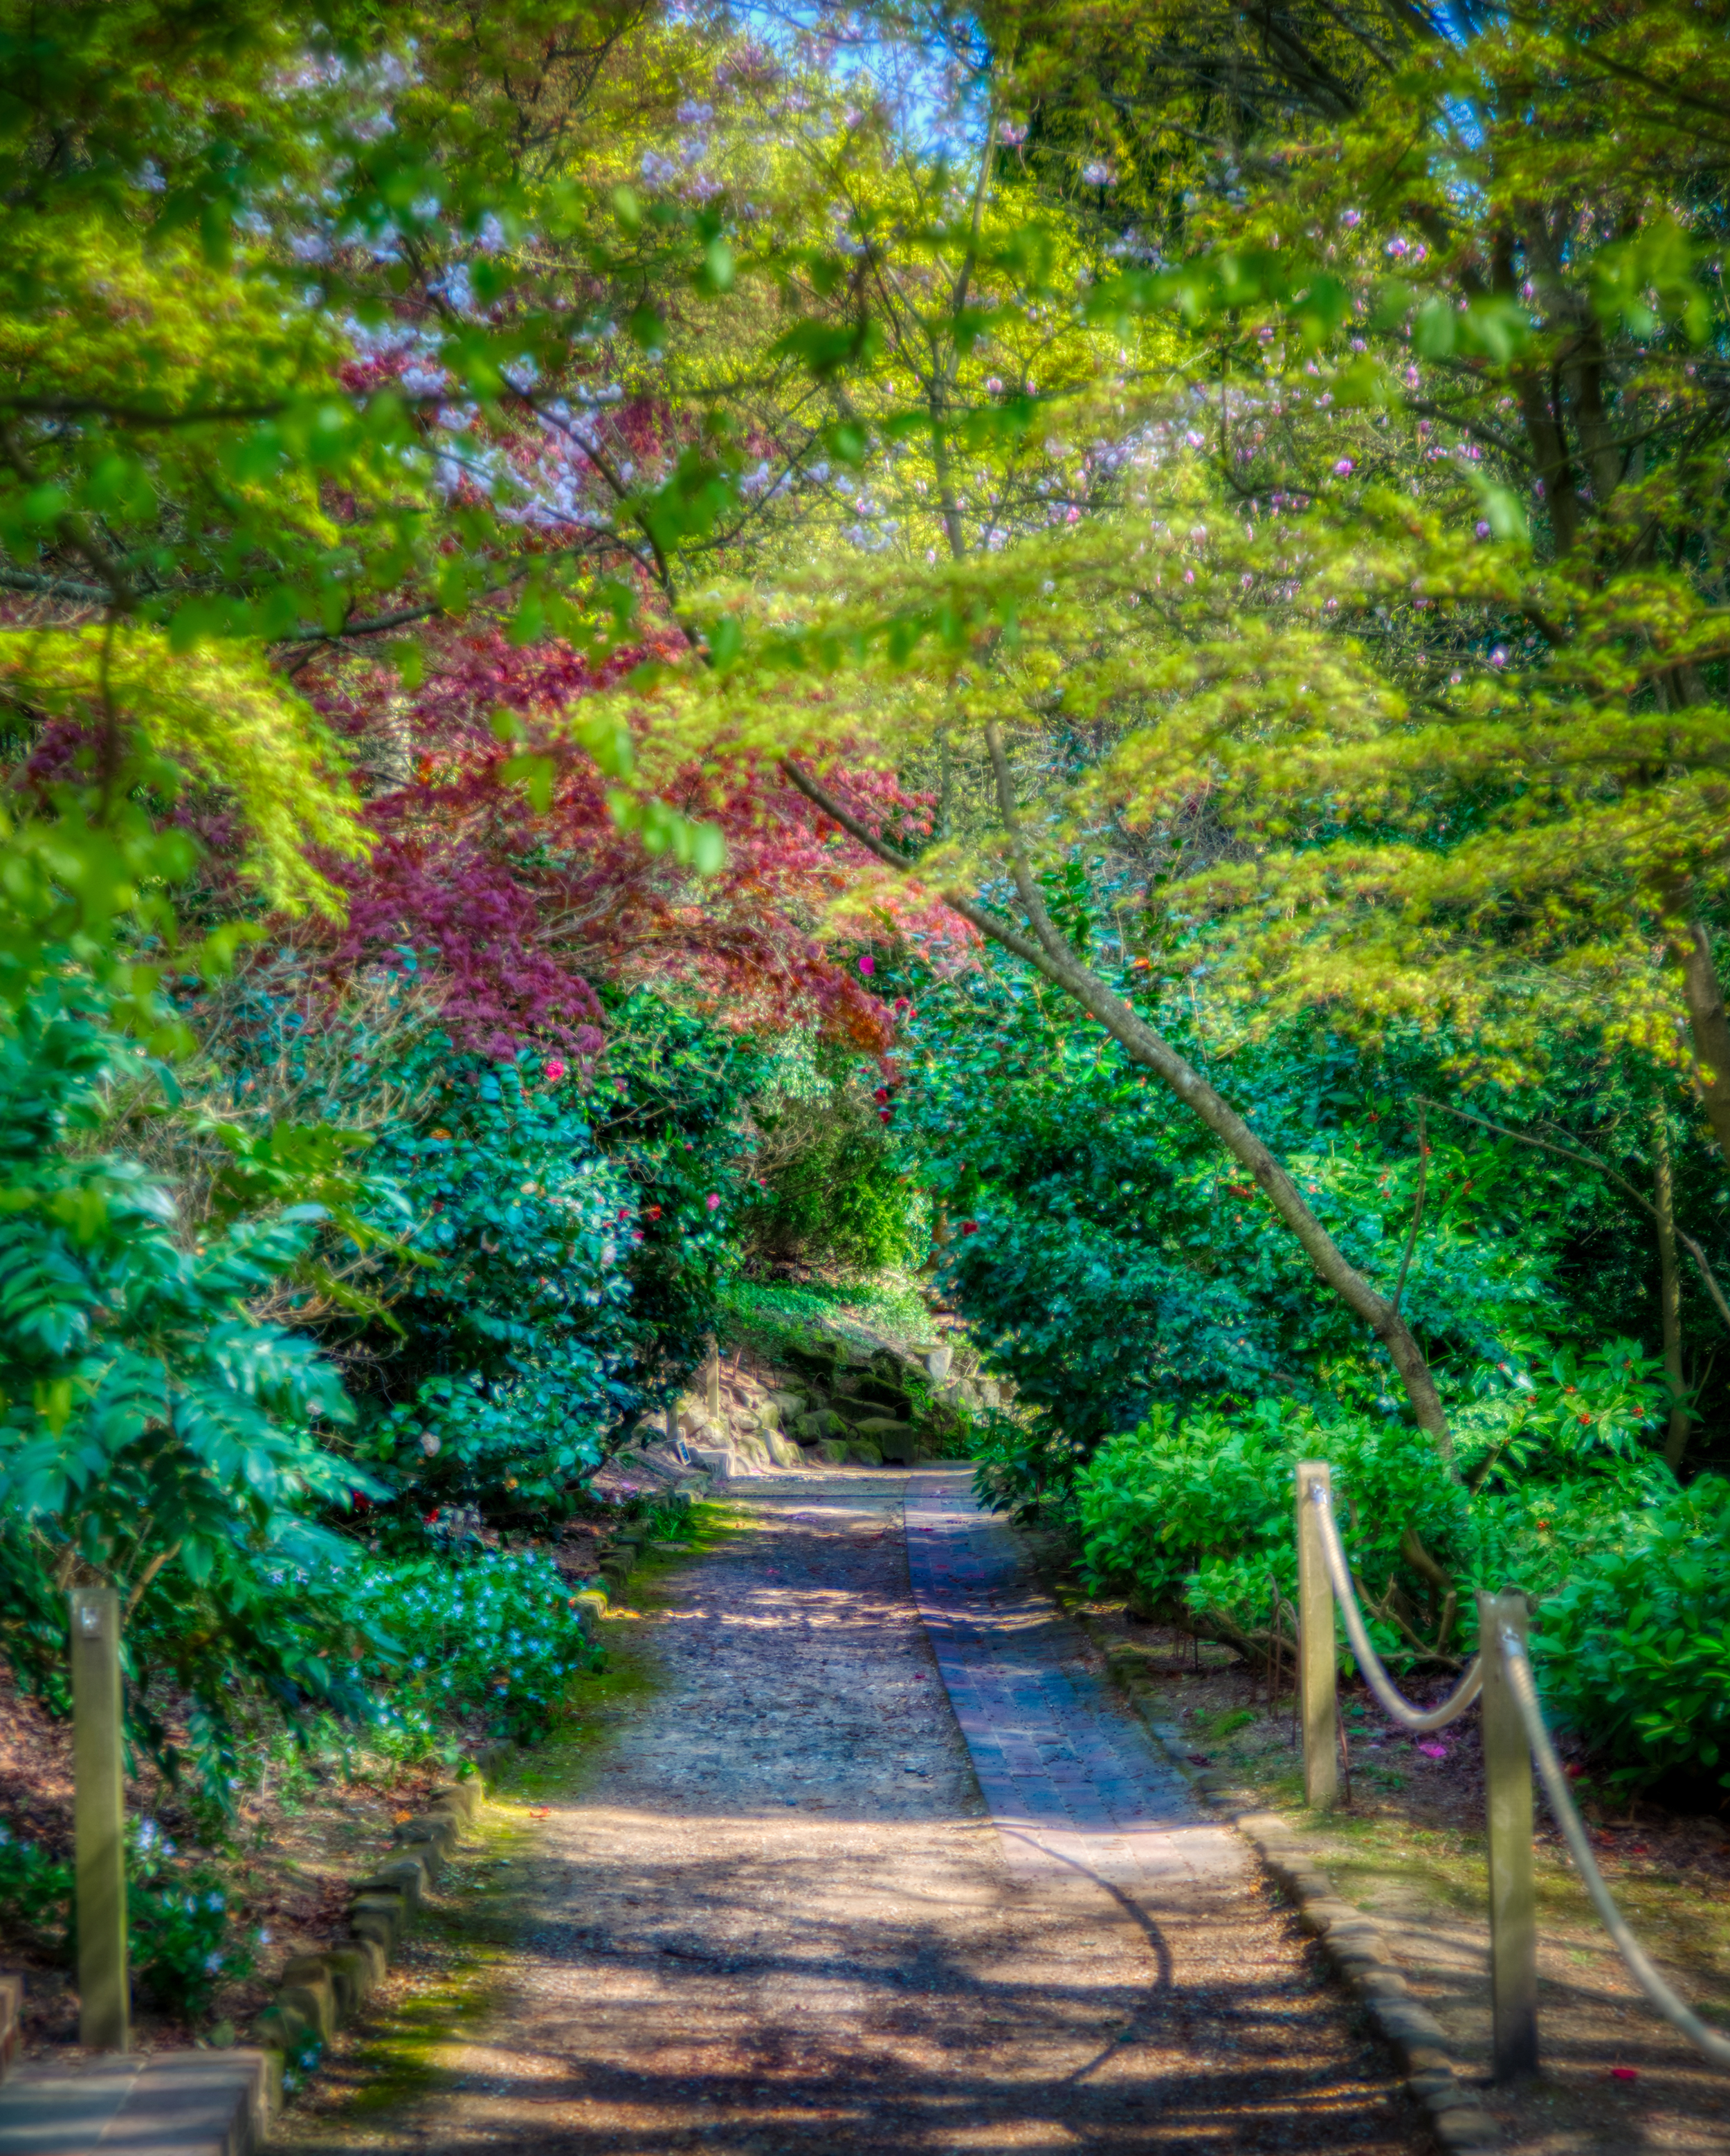 Standen House Walkway    📷 PHOTO INFORMATION    DATE TAKEN  2019-04-15 11:32:25   CAMERA  D610   CAMERA MAKE  NIKON   EXPOSURE TIME  1/320   APERTURE  F/3.8   ISO  200   FOCAL LENGTH  62MM